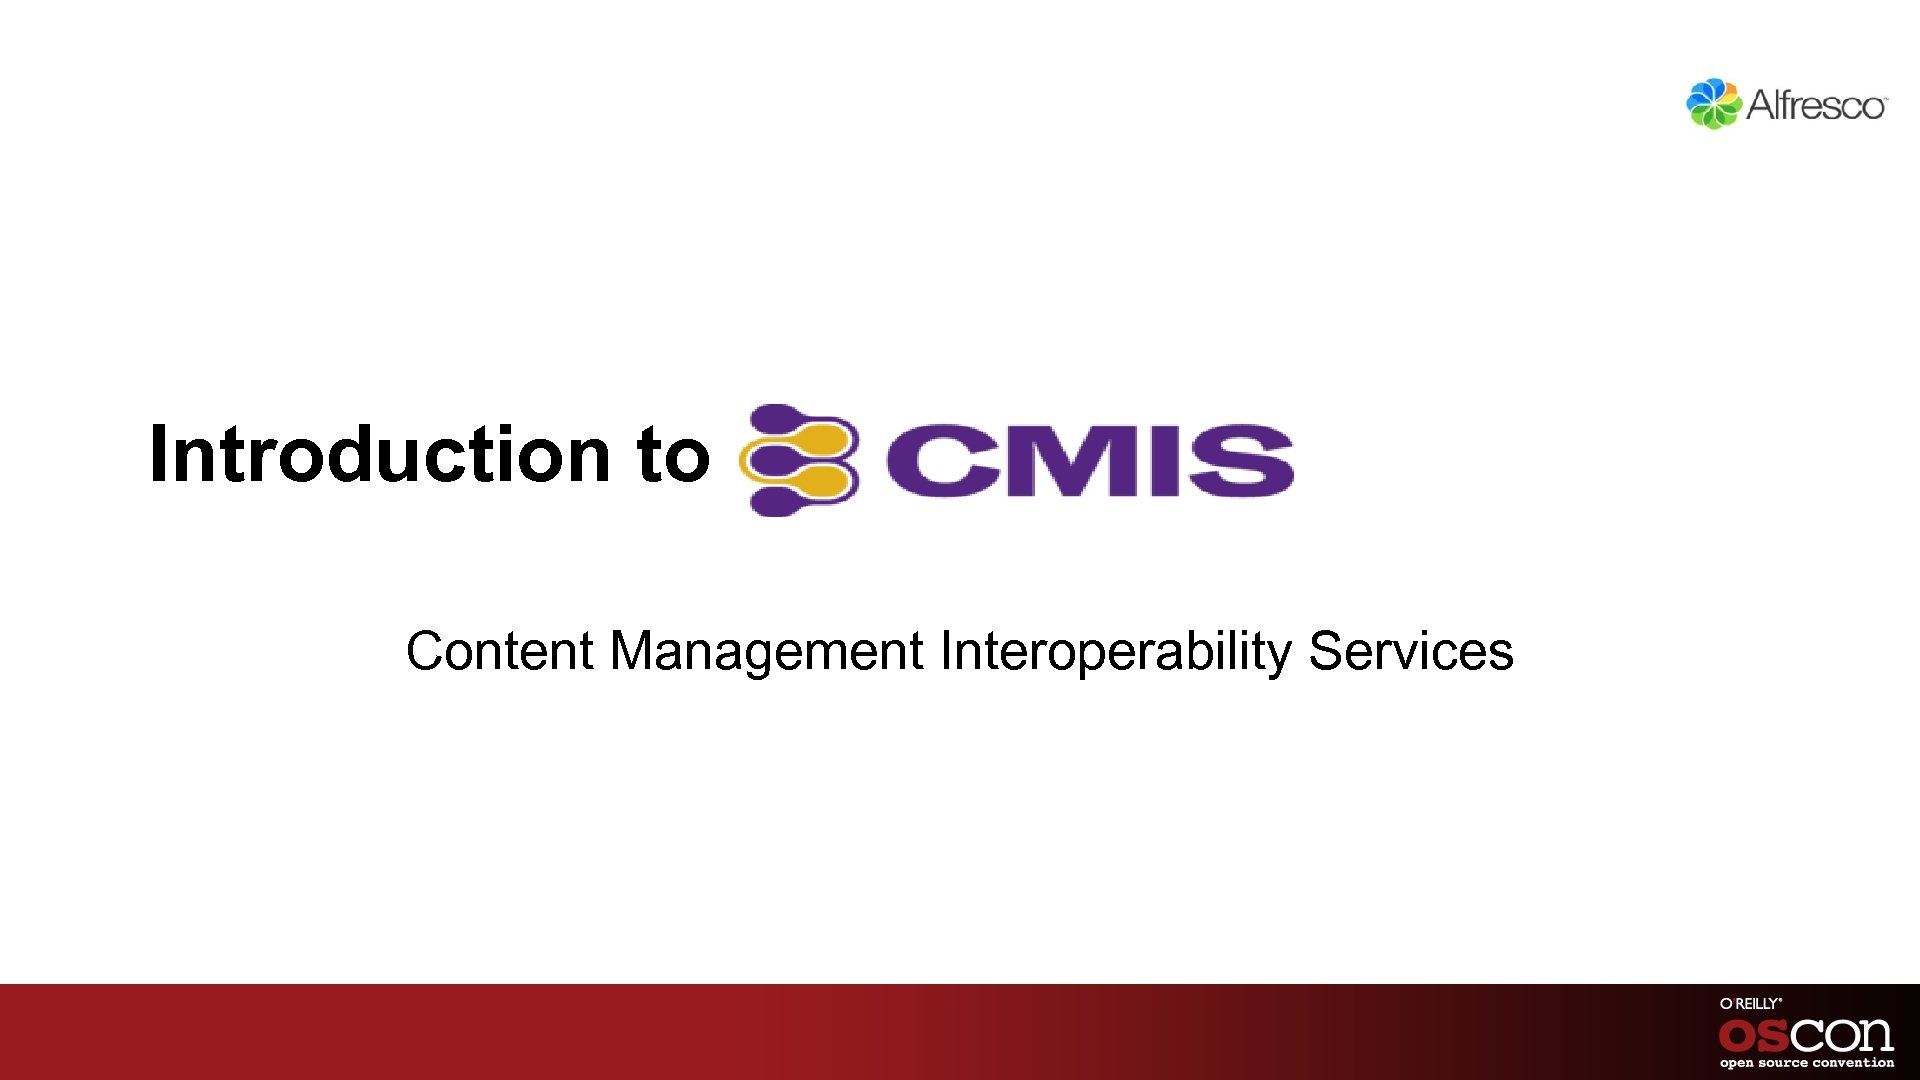 Introduction to Content Management Interoperability Services